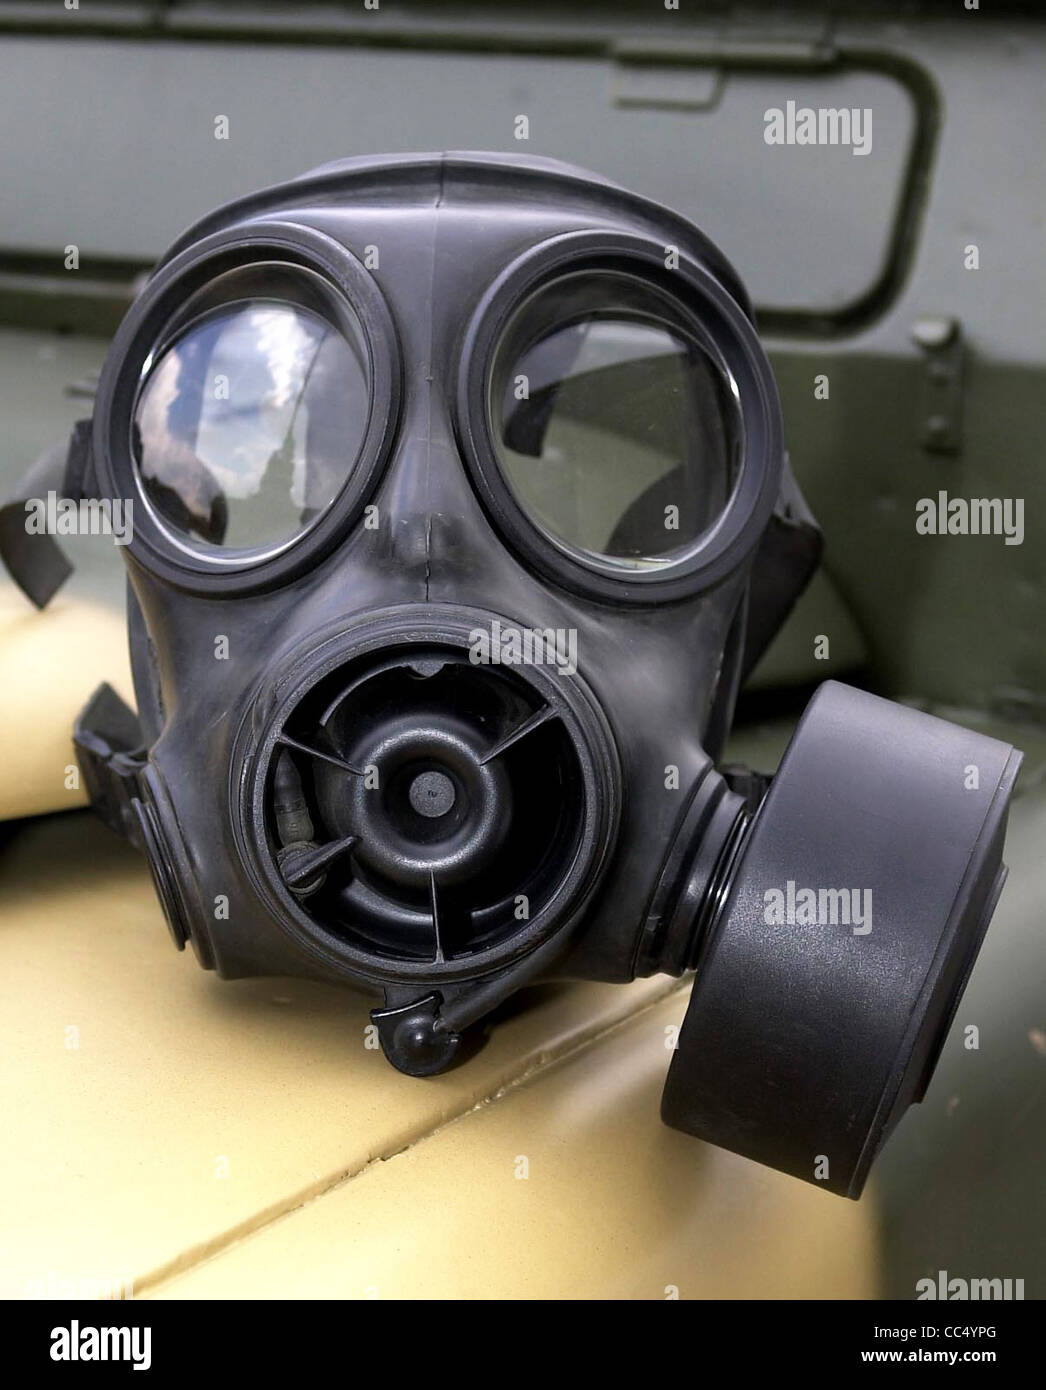 Respirators - Gas Masks - military surplus equipment  This is a